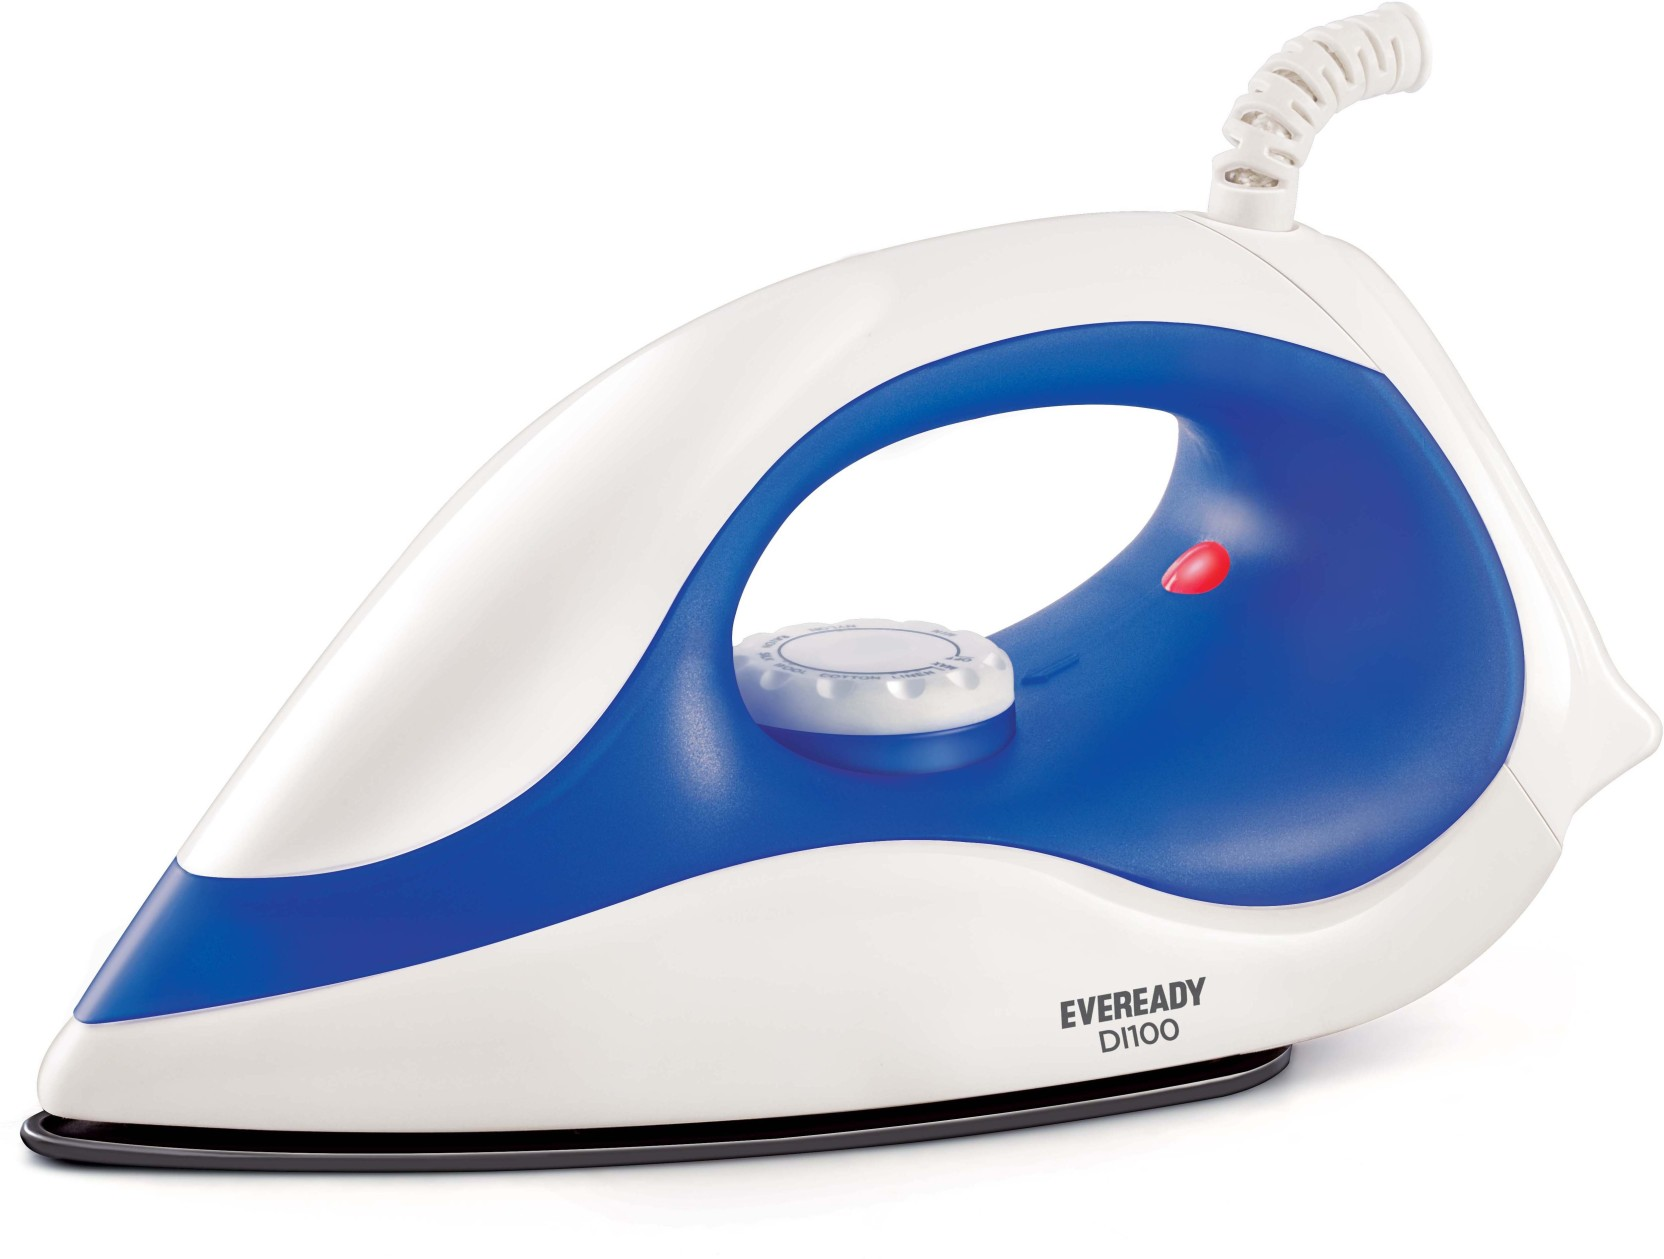 Home Design Services Online Eveready Di100 Dry Iron Price In India Buy Eveready